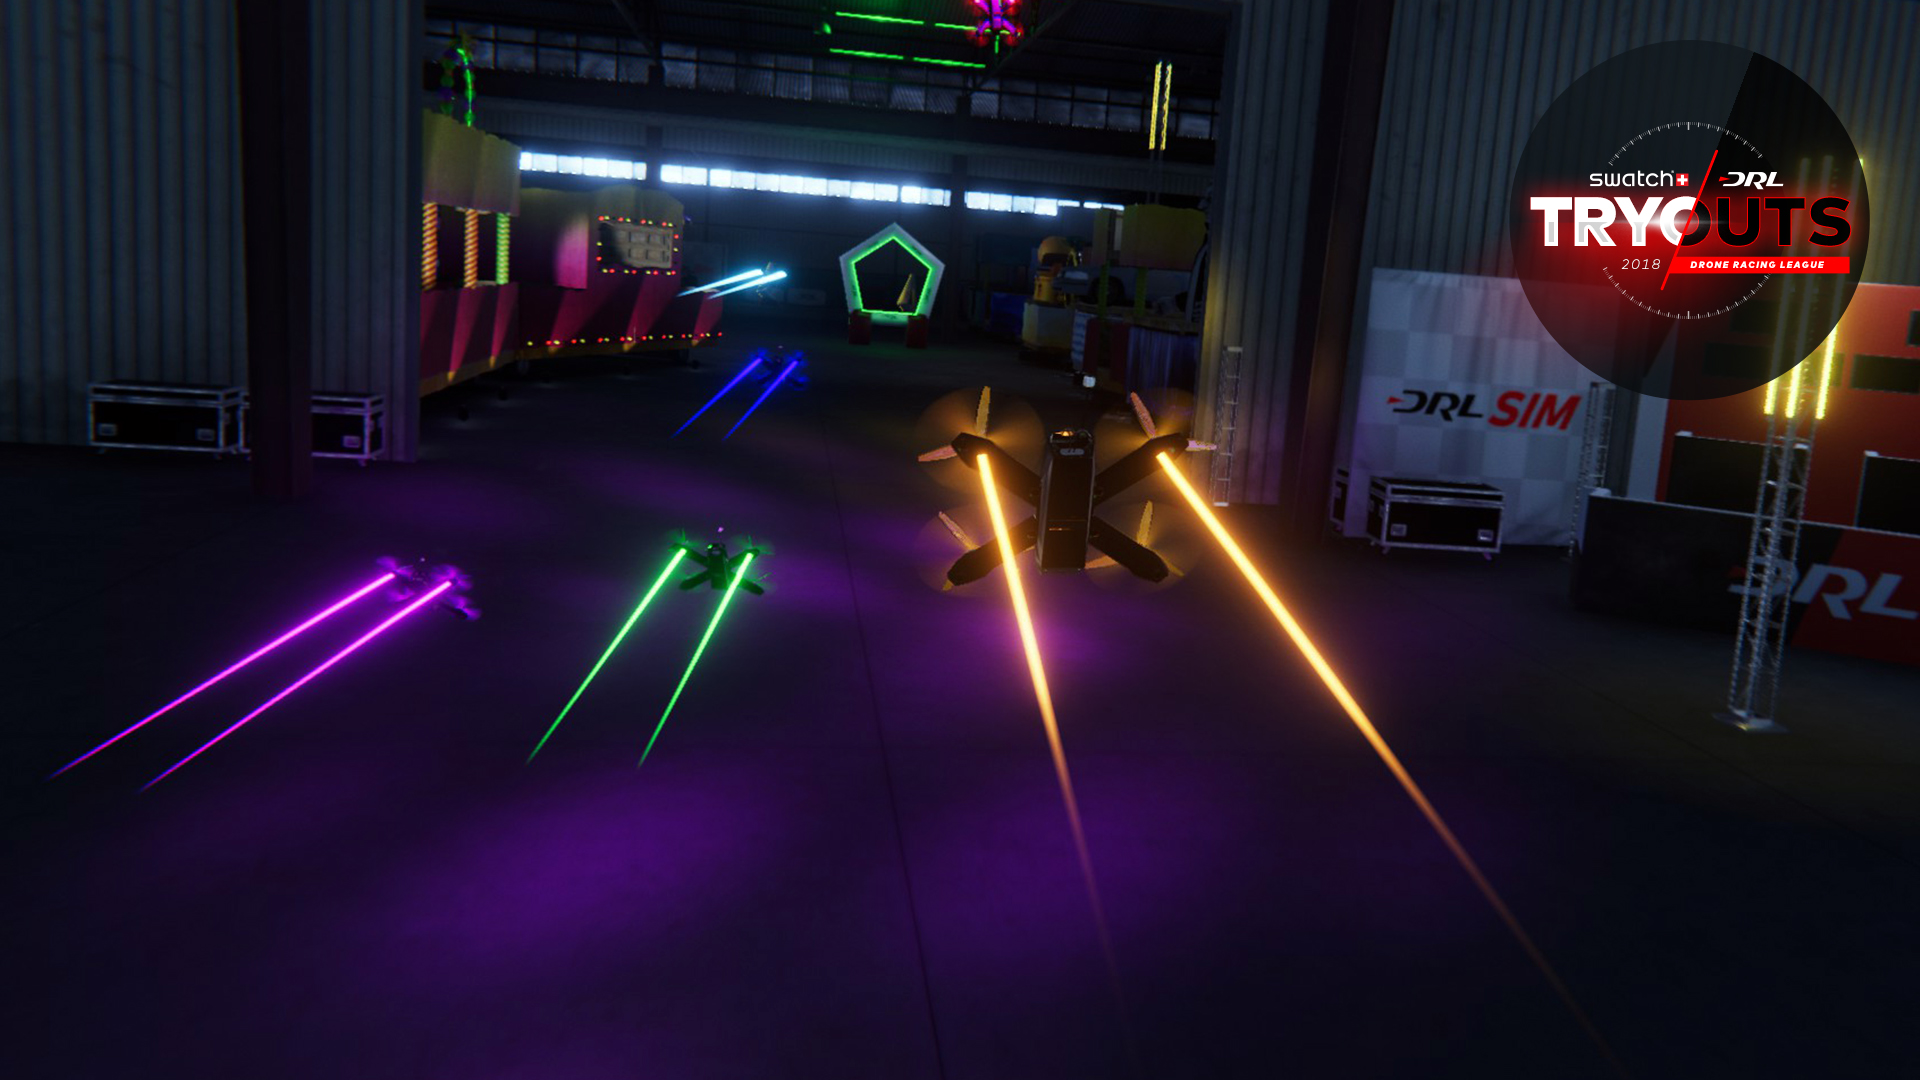 Image Result For Drone Racing League Simulator